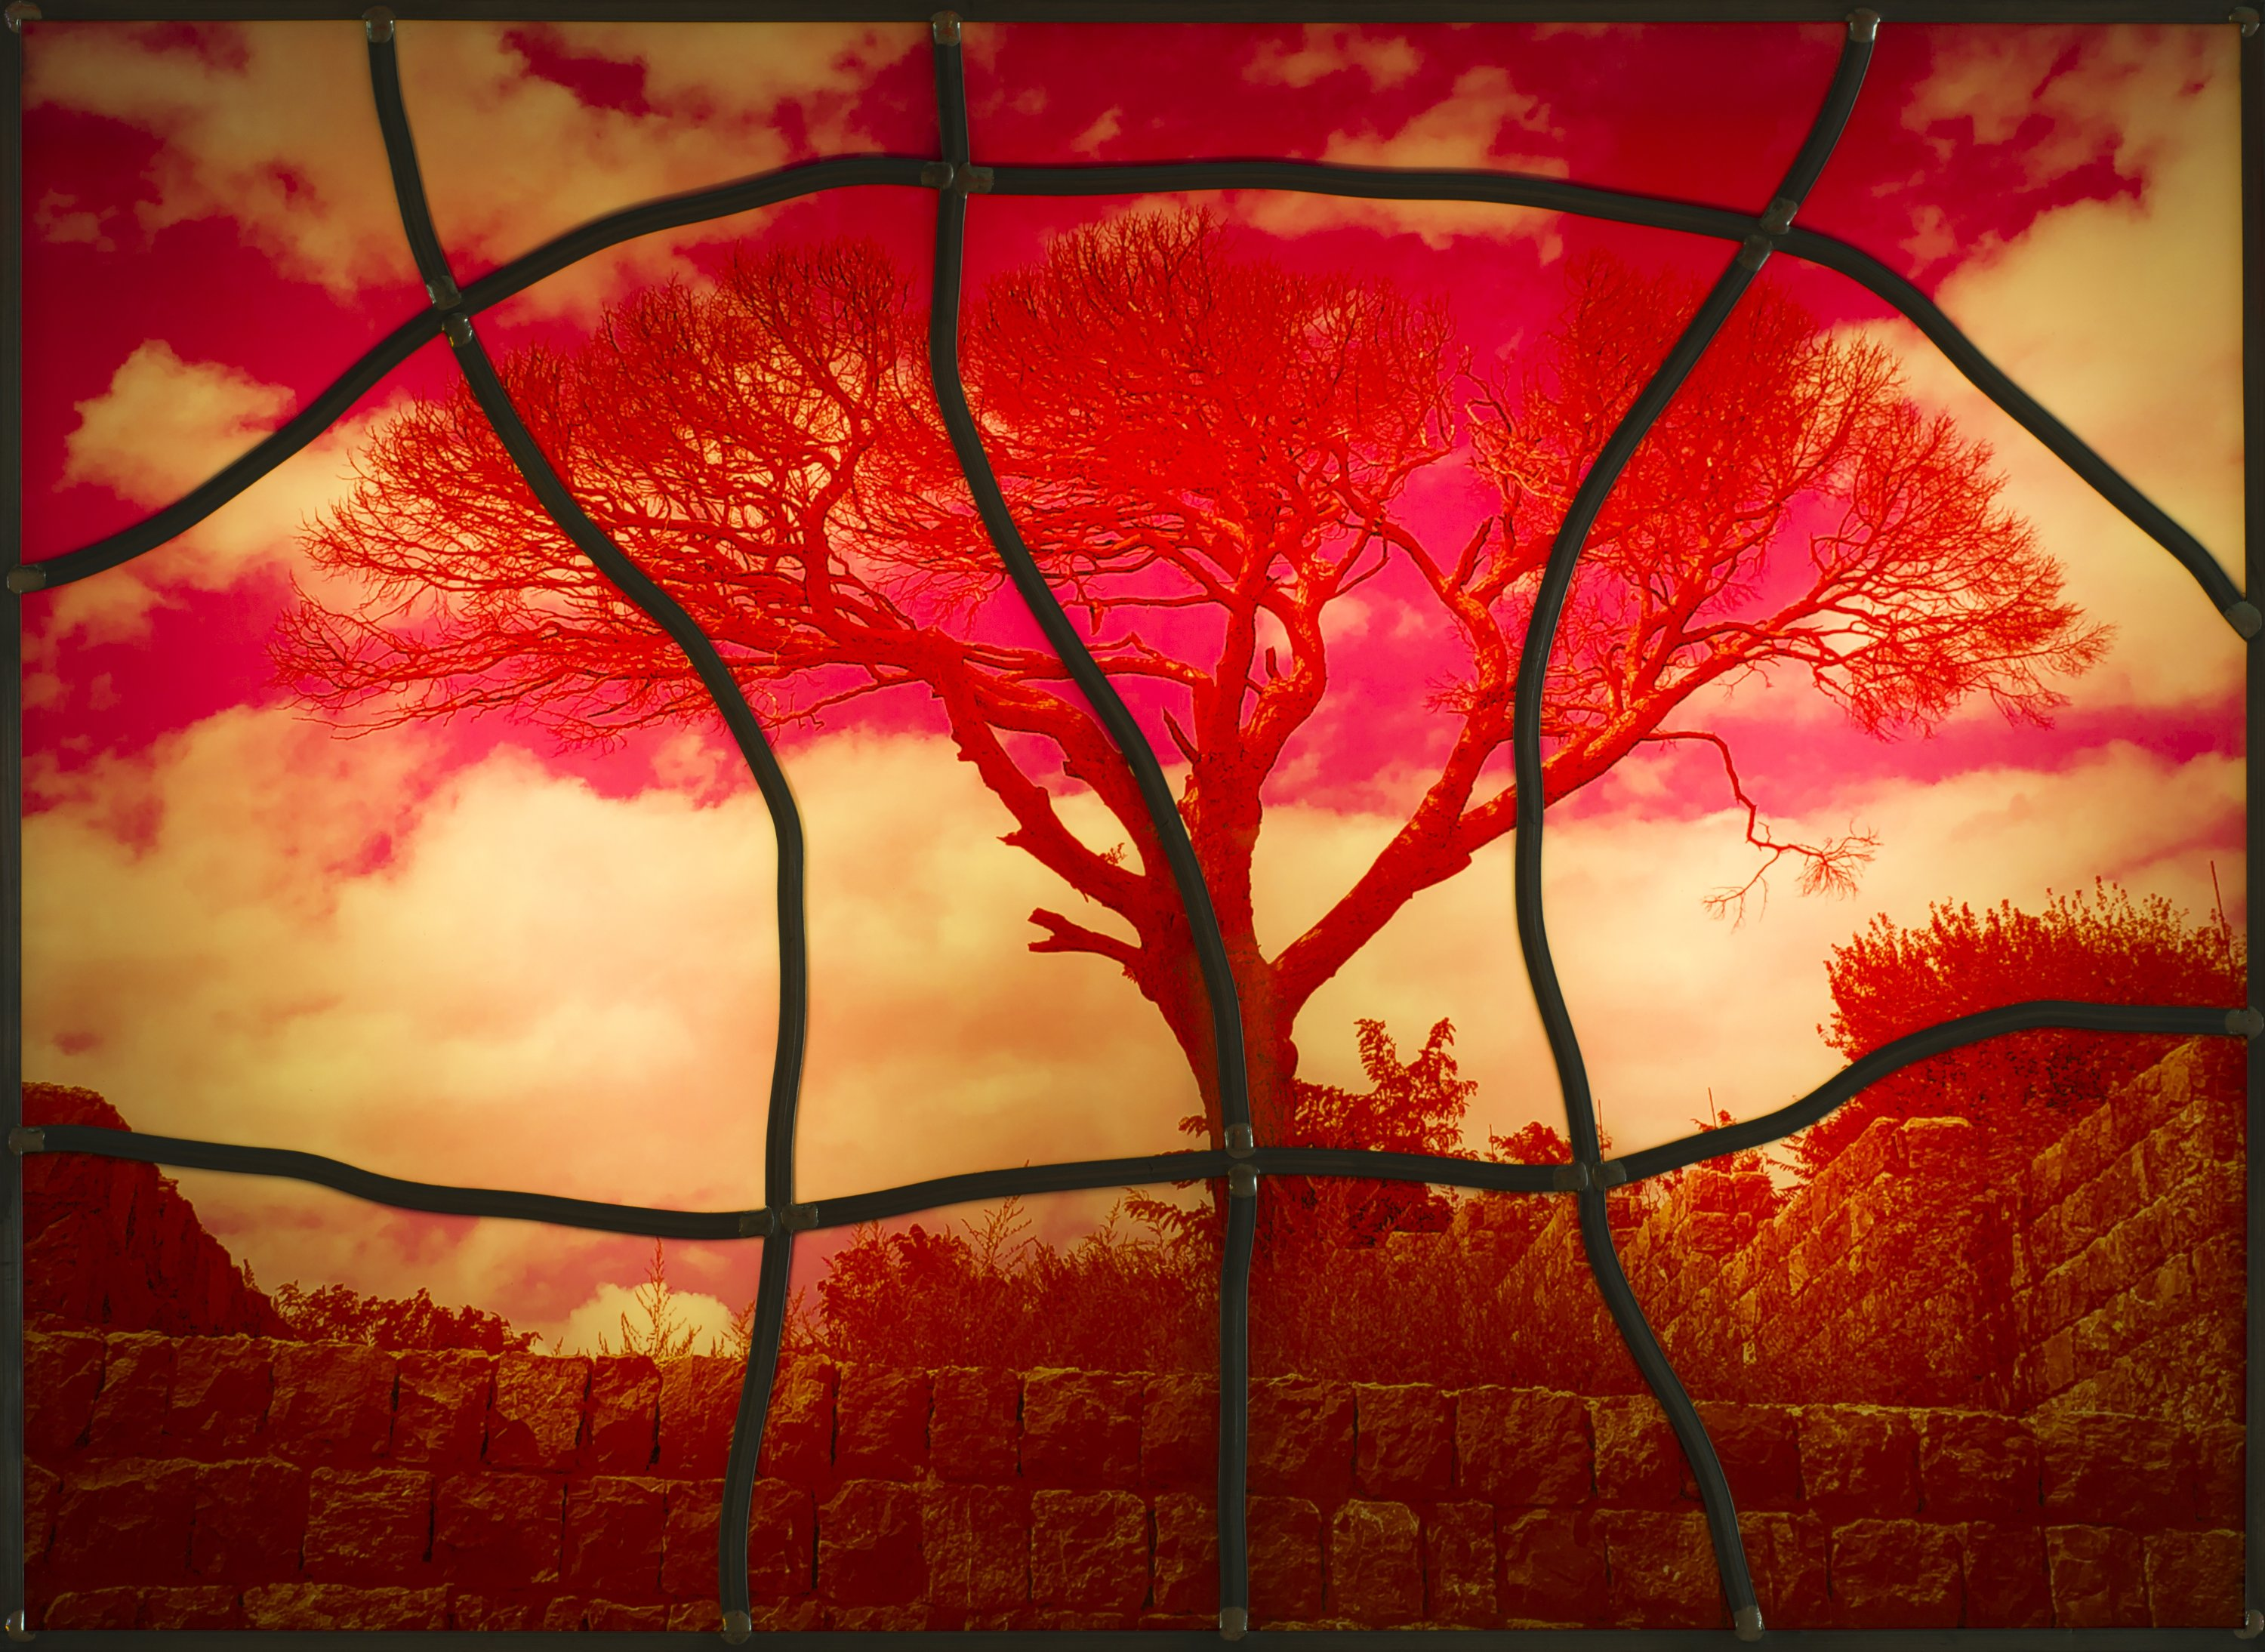 A stained glass work by Sarkis at the exhibition at Dirimart Gallery, Istanbul. (Courtesy of Dirimart)